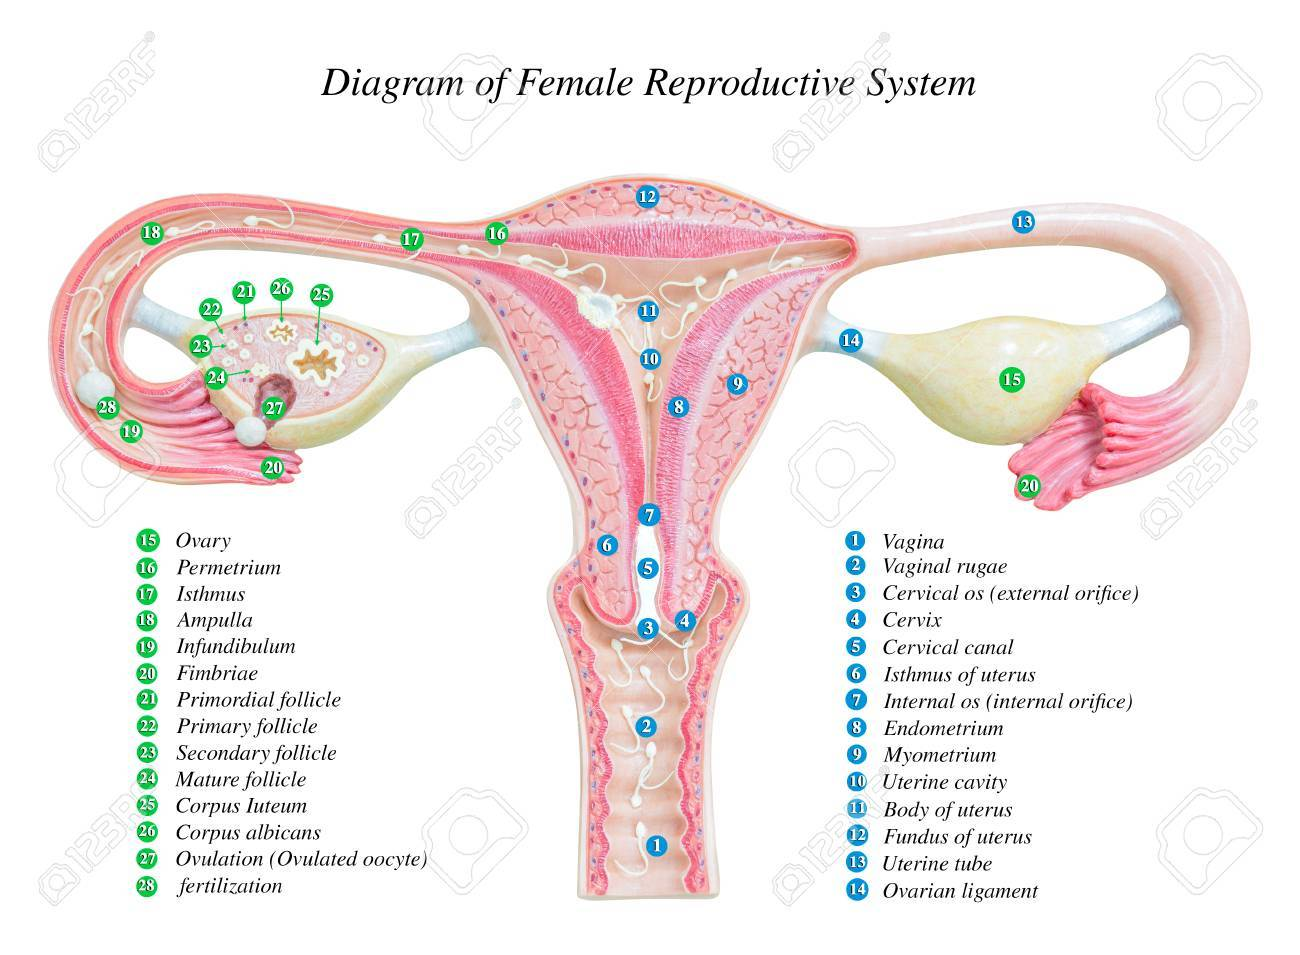 Female Reproductive System Image Diagram Stock Photo Picture And